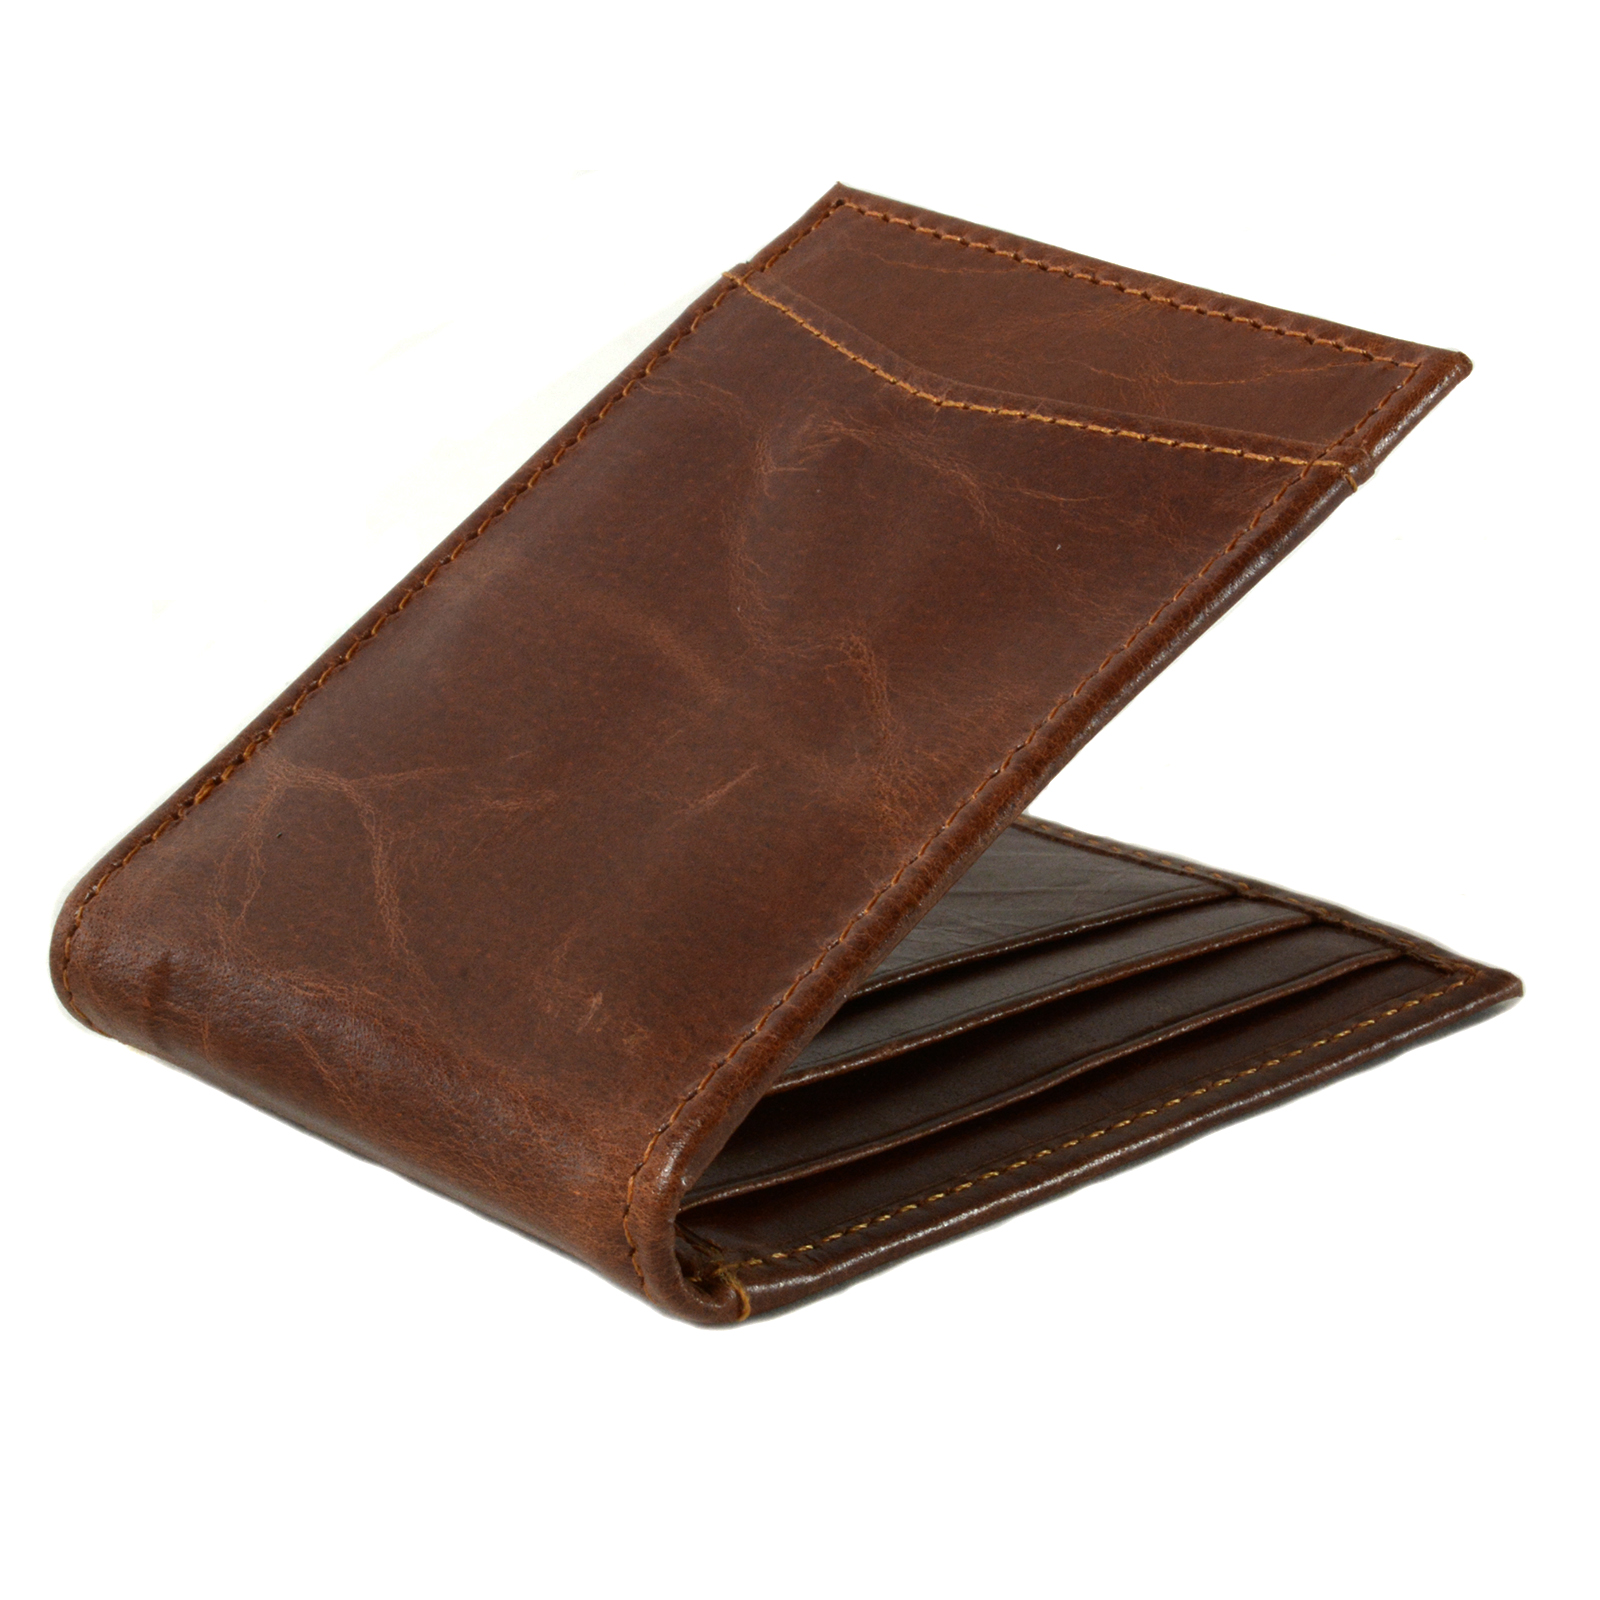 Alpine-Swiss-Mens-Bifold-Money-Clip-Spring-Loaded-Leather-ID-Front-Pocket-Wallet thumbnail 31